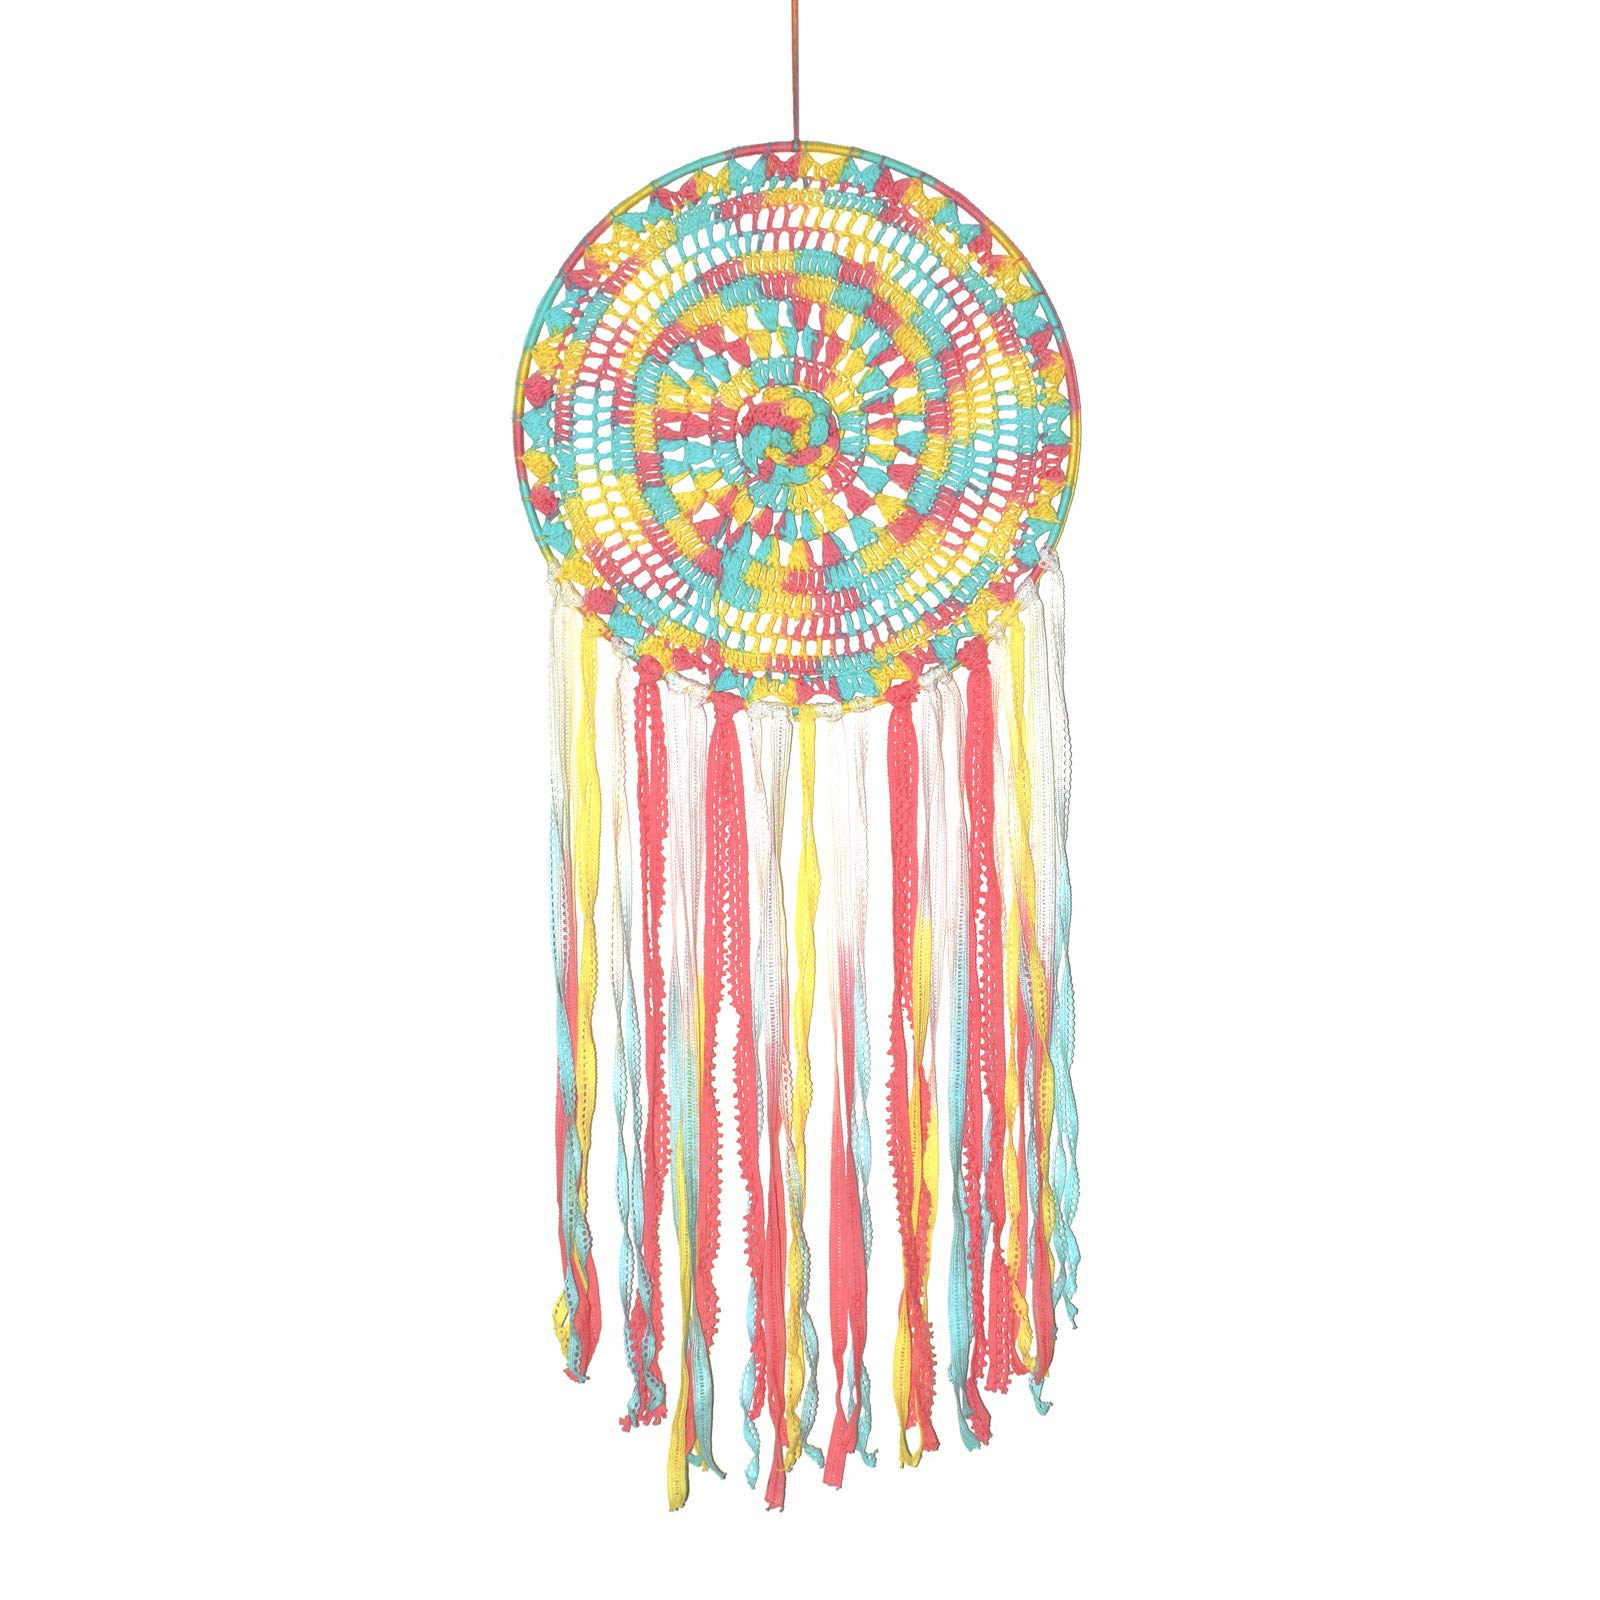 Asian Hobby Crafts Macrame Handcrafted Dream Catcher Wall Hanging – Multicolored Crochet Boho Style for Room Decor, Nursery Decor, Baby Shower, Gifting, Size – 28 x 12 inches (L x Dia)